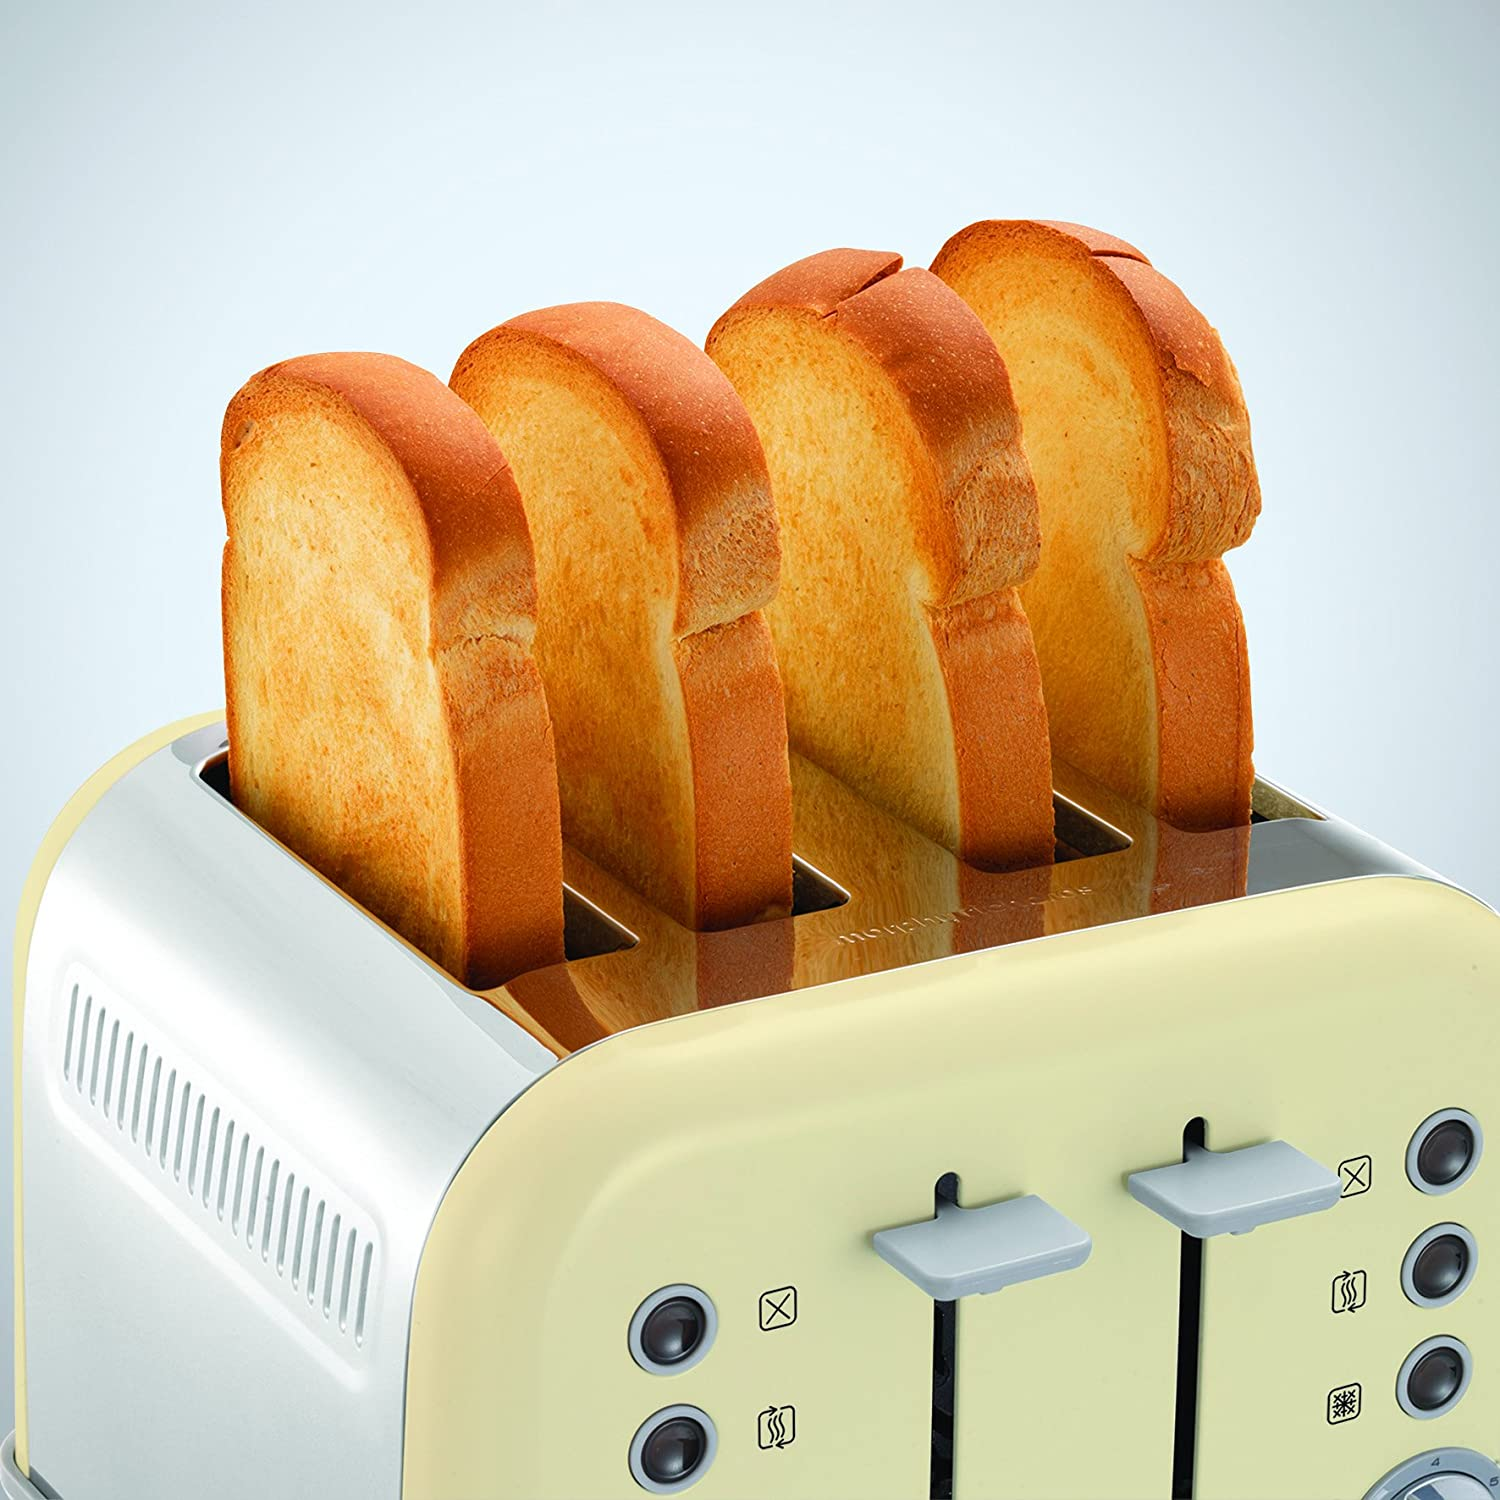 Morphy Richards Accents Special Edition 4 Slice Toaster, Cream Cream